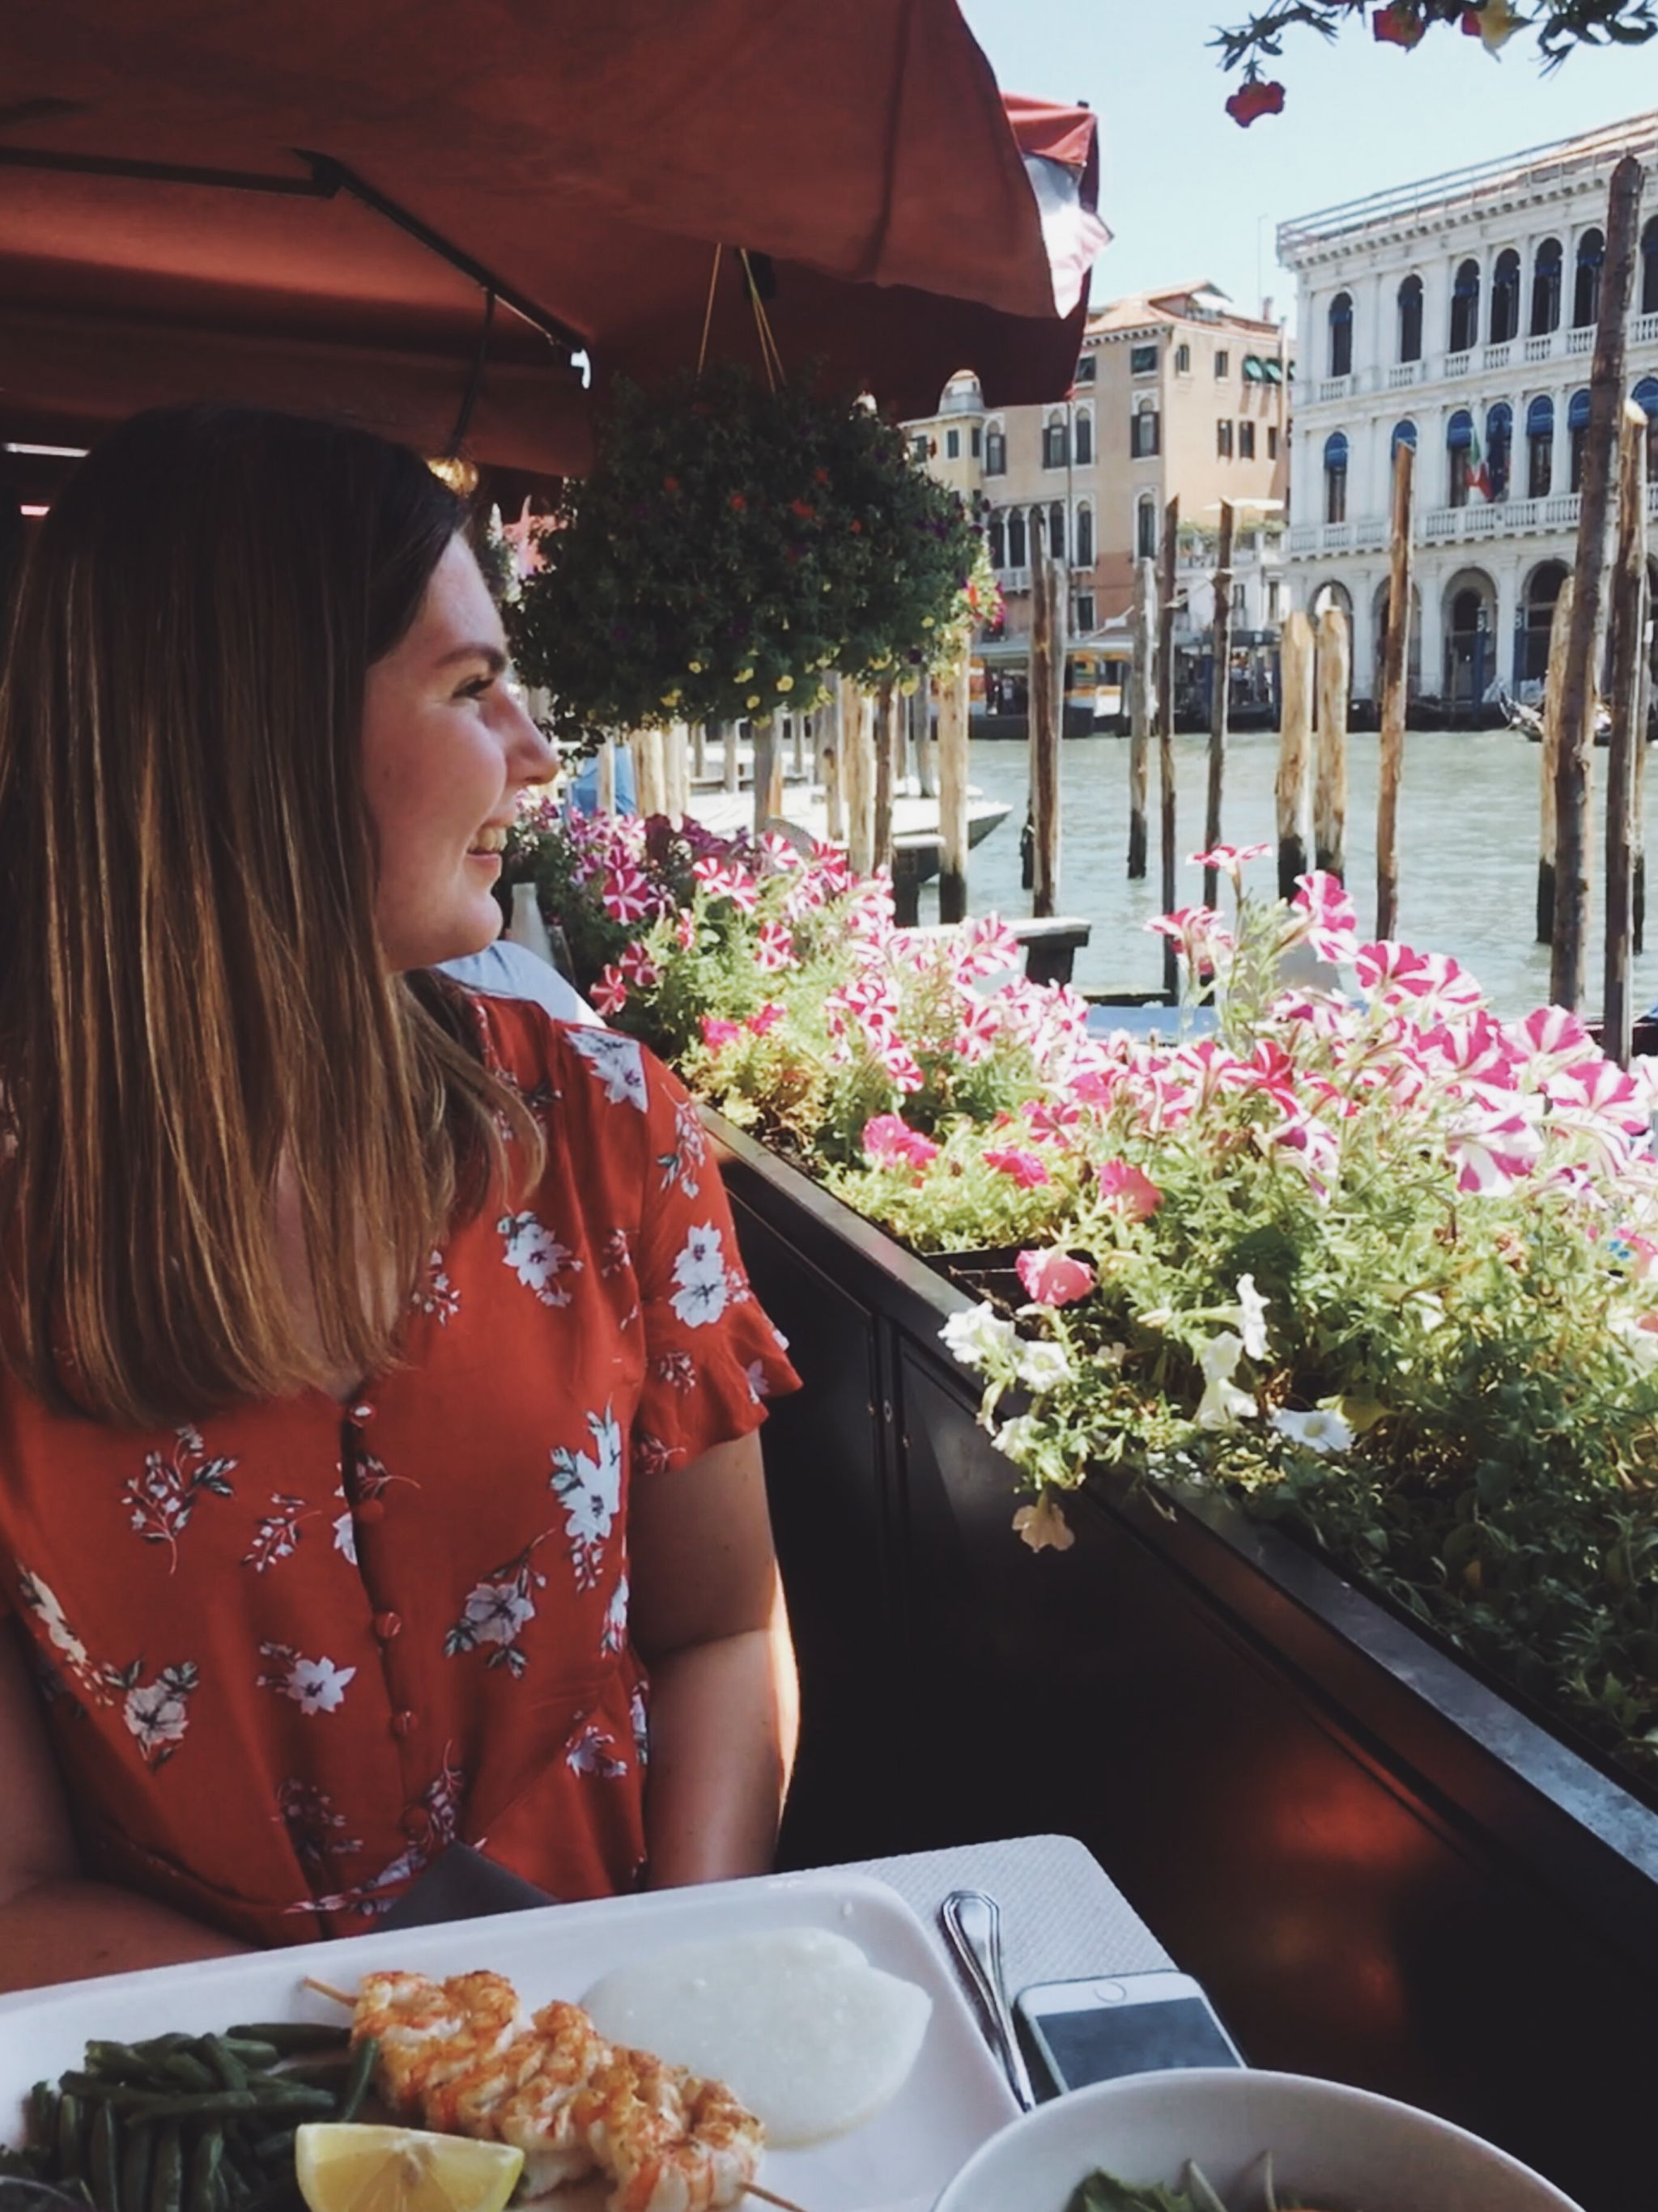 2 days in Venice - eating along the grand canal